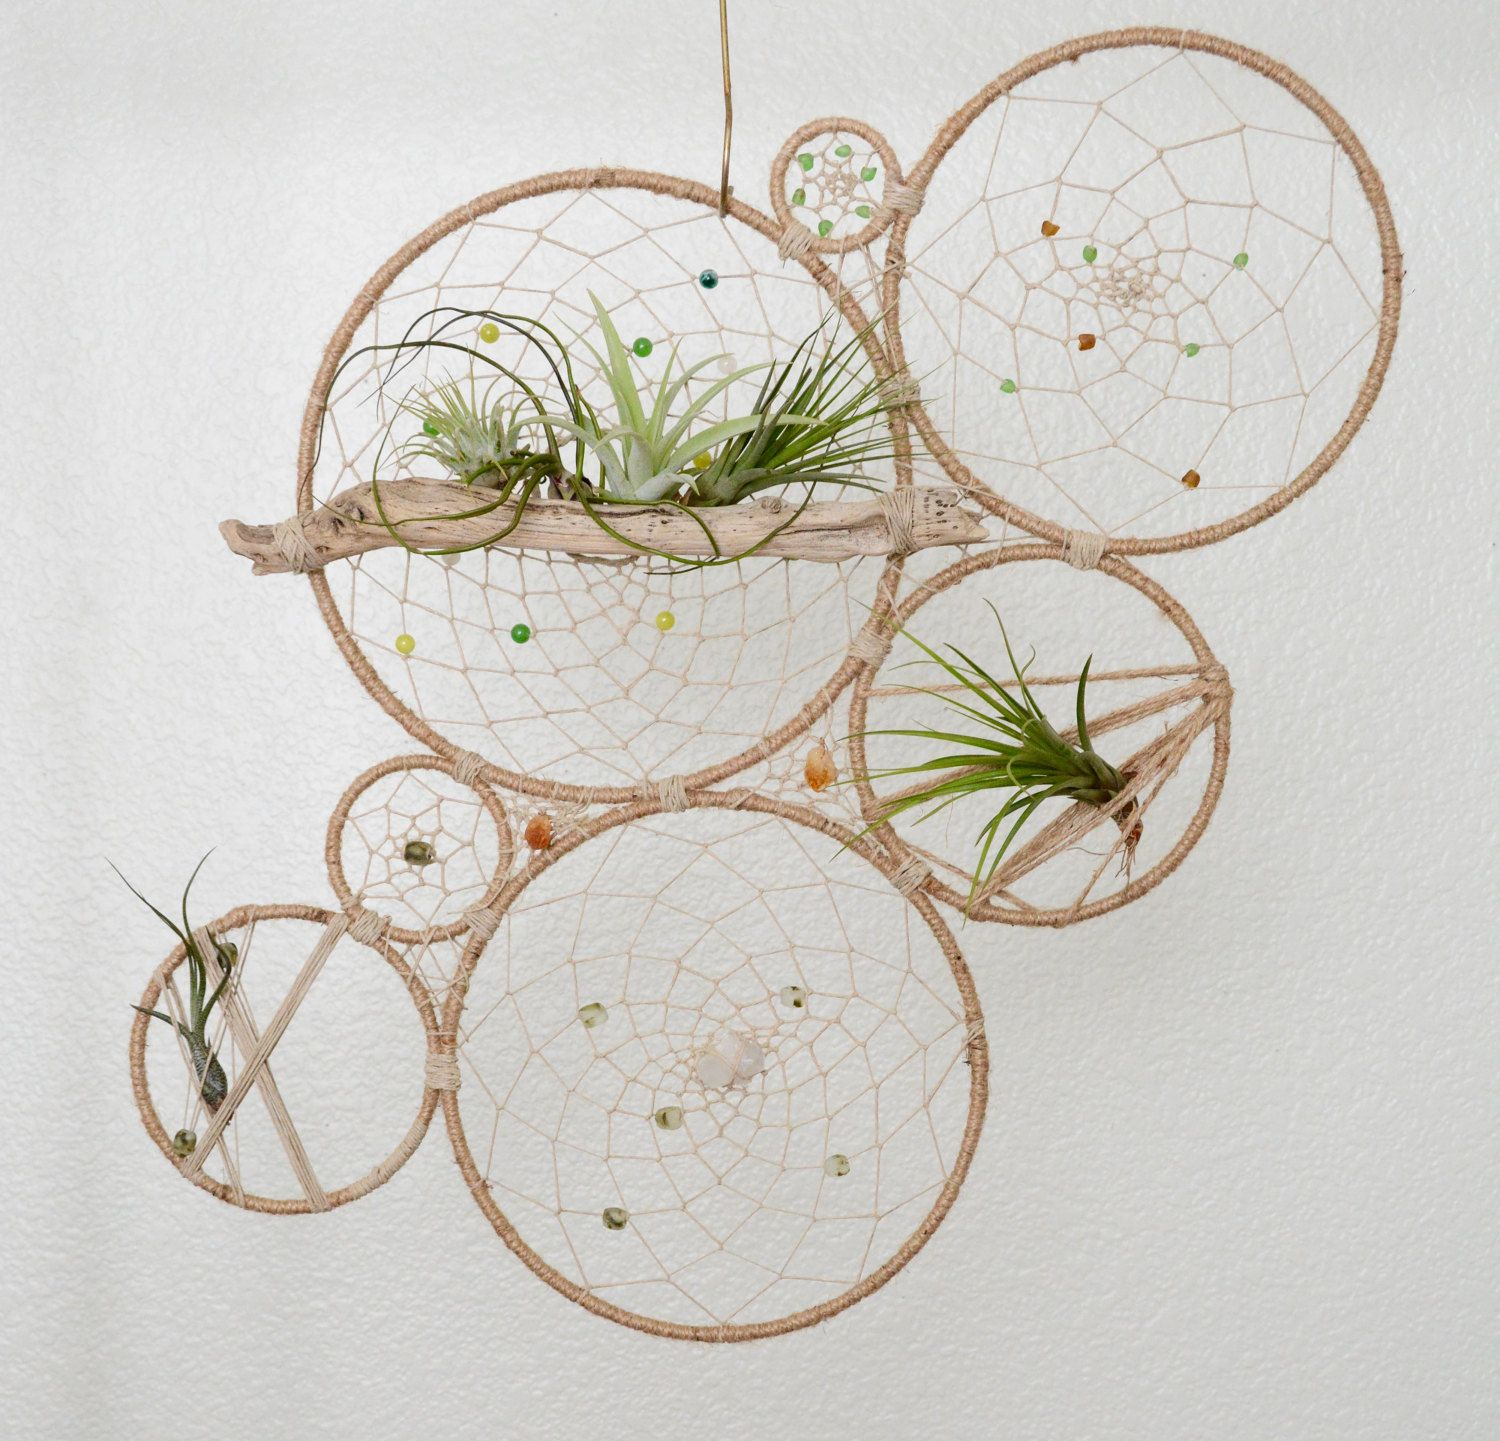 Round Air Plant Holder   Natural Tillandsia Dreamcatcher Wall Hanging    Modern Geometric Bohemian Wall Accent   Beach House Decor